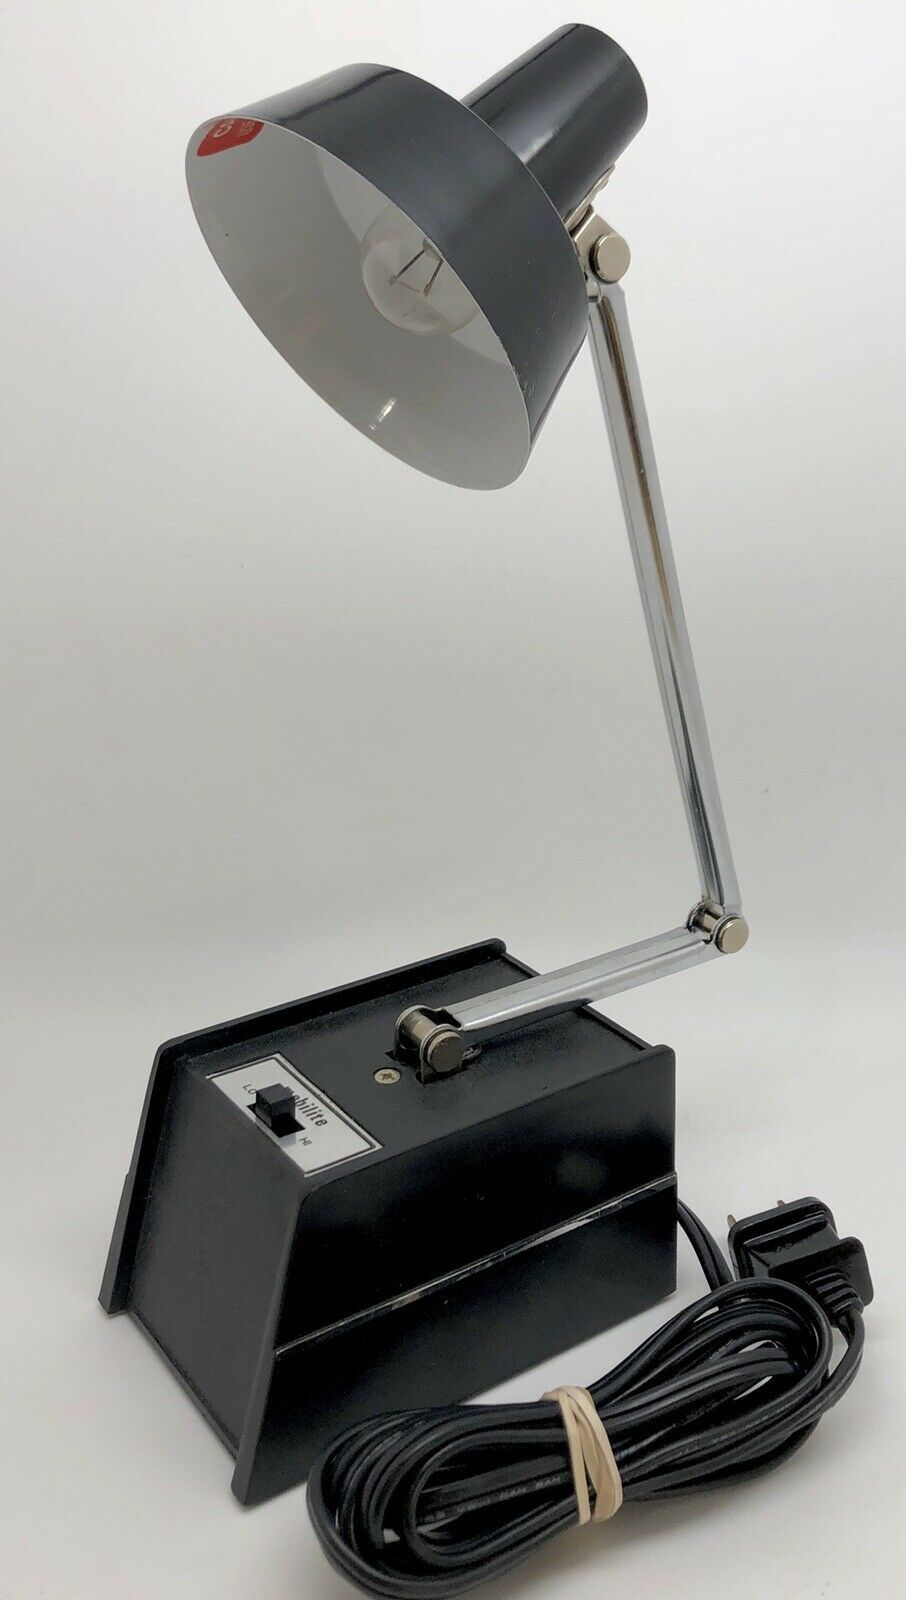 Vintage Mobilite Model 26 Adjustable Black Table Lamp W Weighted Base Rf1019 In 2020 Black Table Lamps Table Lamp Black Lamp Base